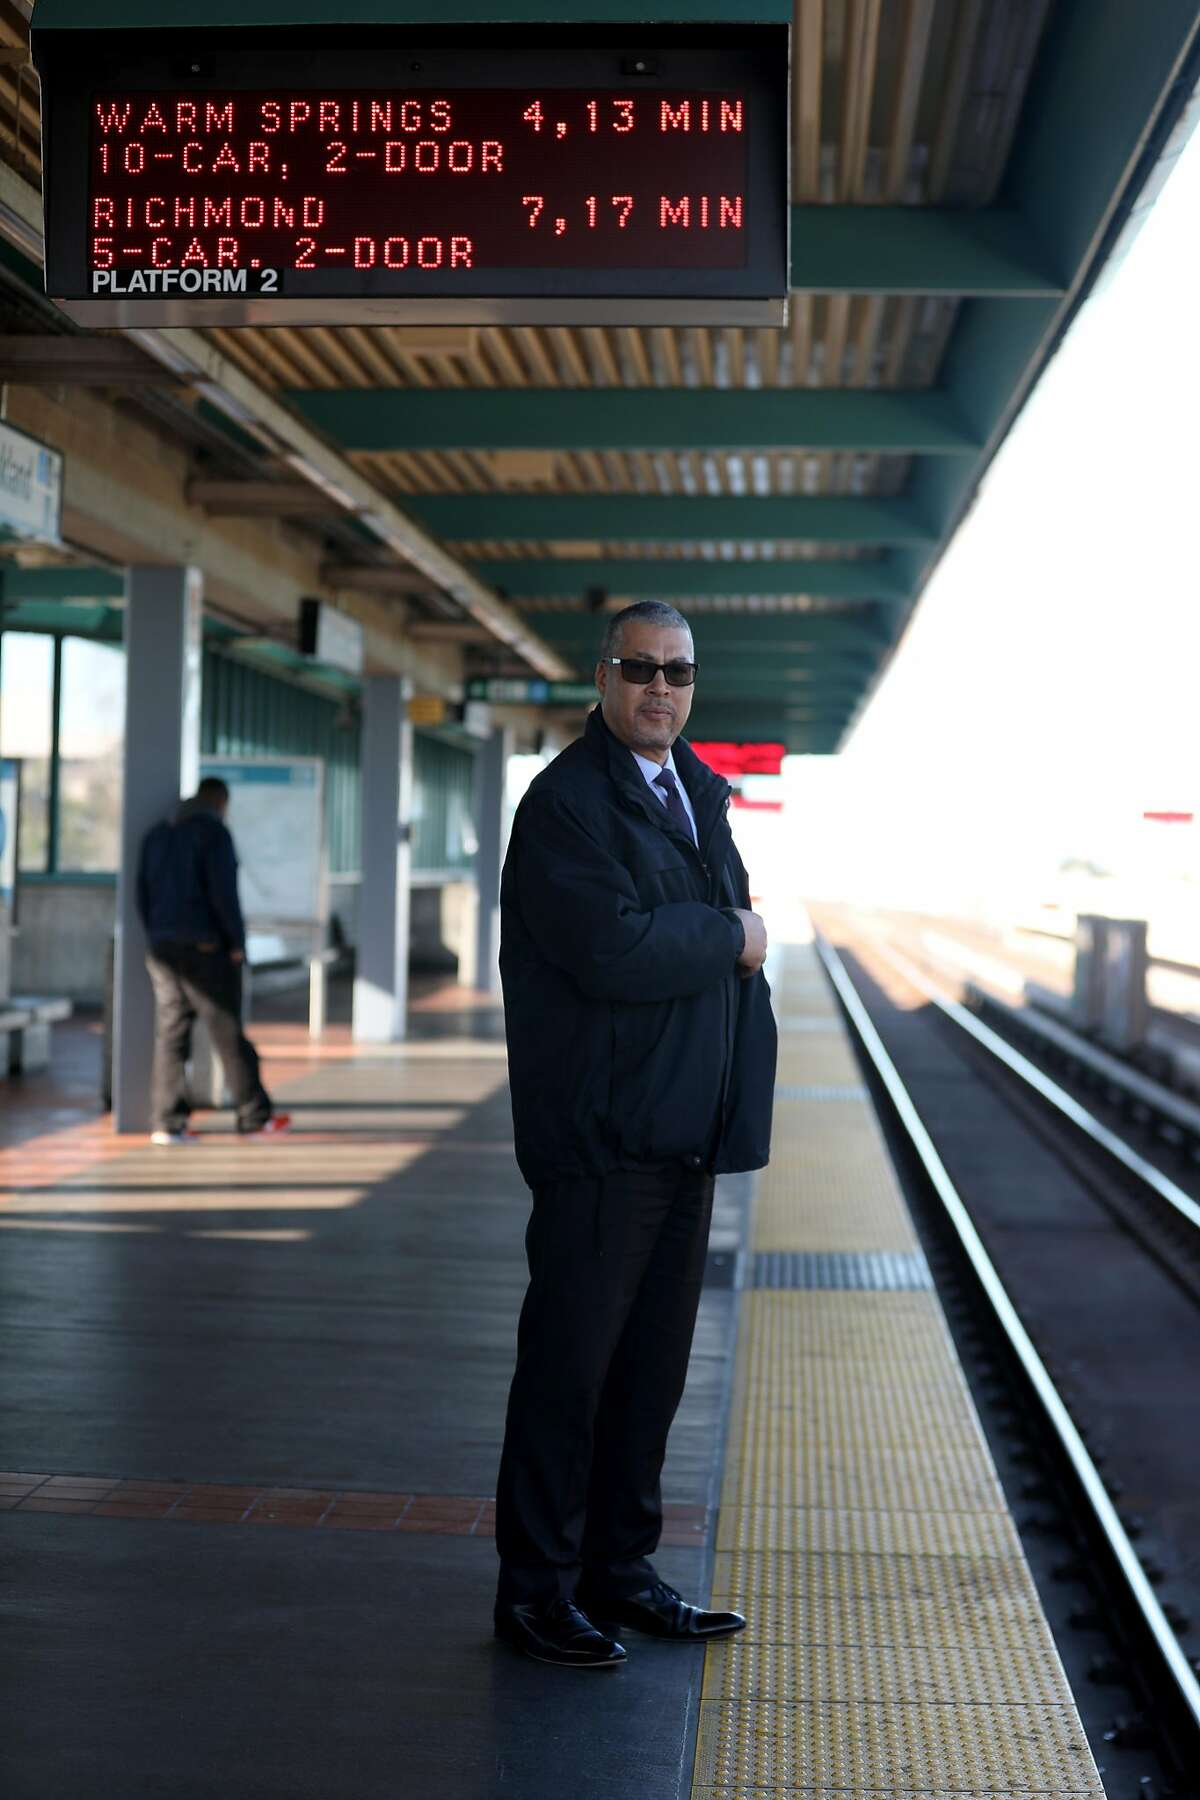 BART's independent police inspector general Russell Bloom waits for the Richmond bart train in Oakland on Monday, Jan. 6, 2020, in Oakland, Calif.